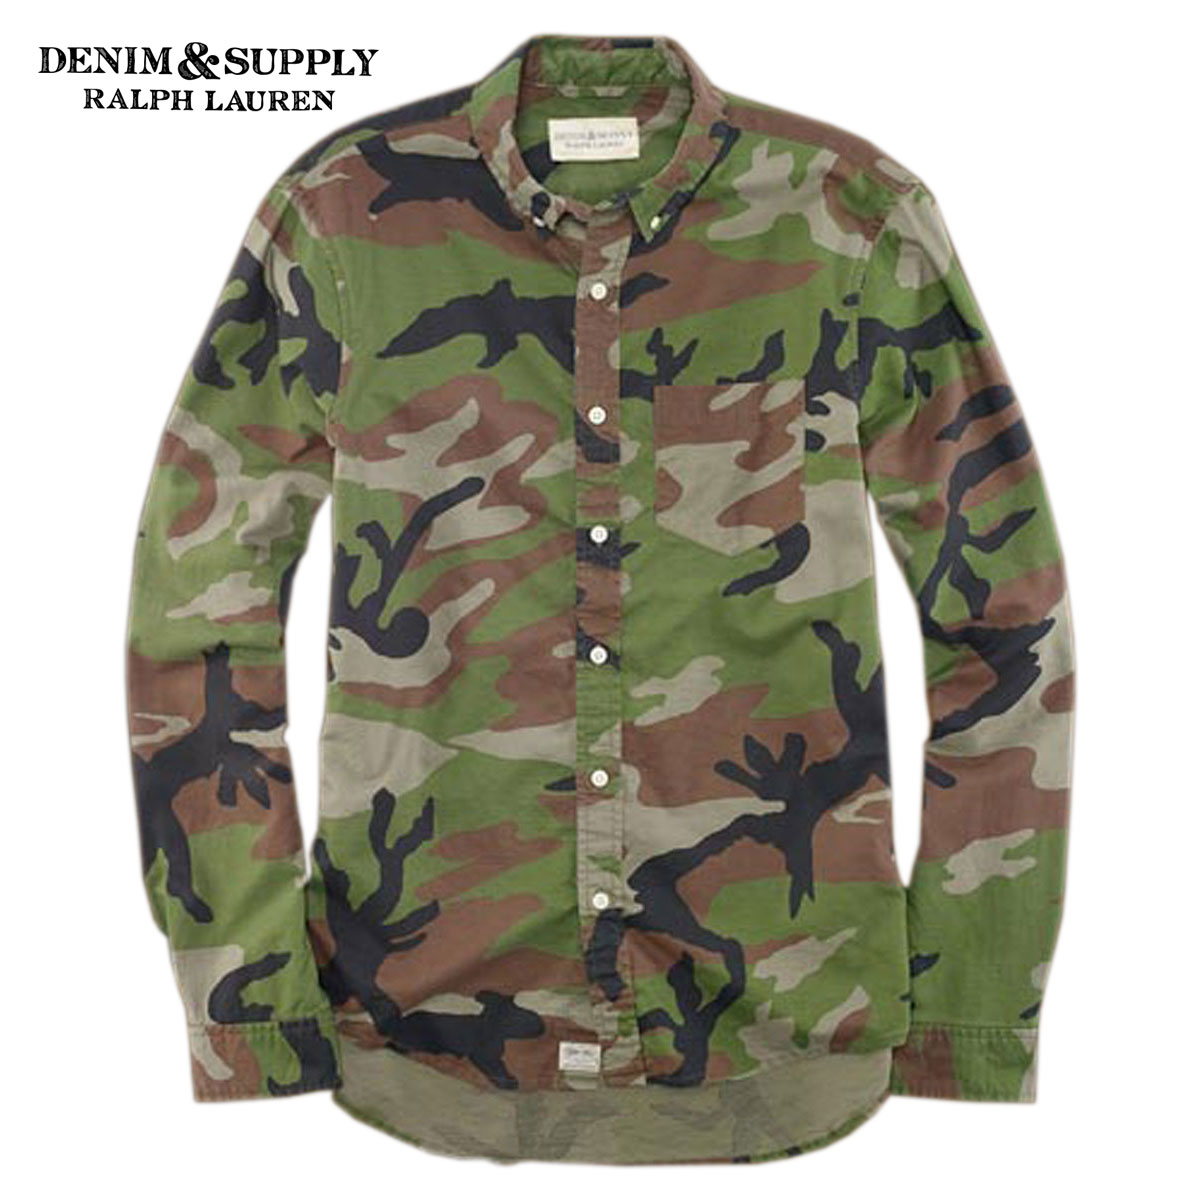 17d42ab8 Rakuten Ichiba shop MIXON: Denim and supply polo Ralph Lauren DENIM &  SUPPLY RALPH LAUREN regular article men long sleeves shirt CAMOUFLAGE SPORT  SHIRT ...